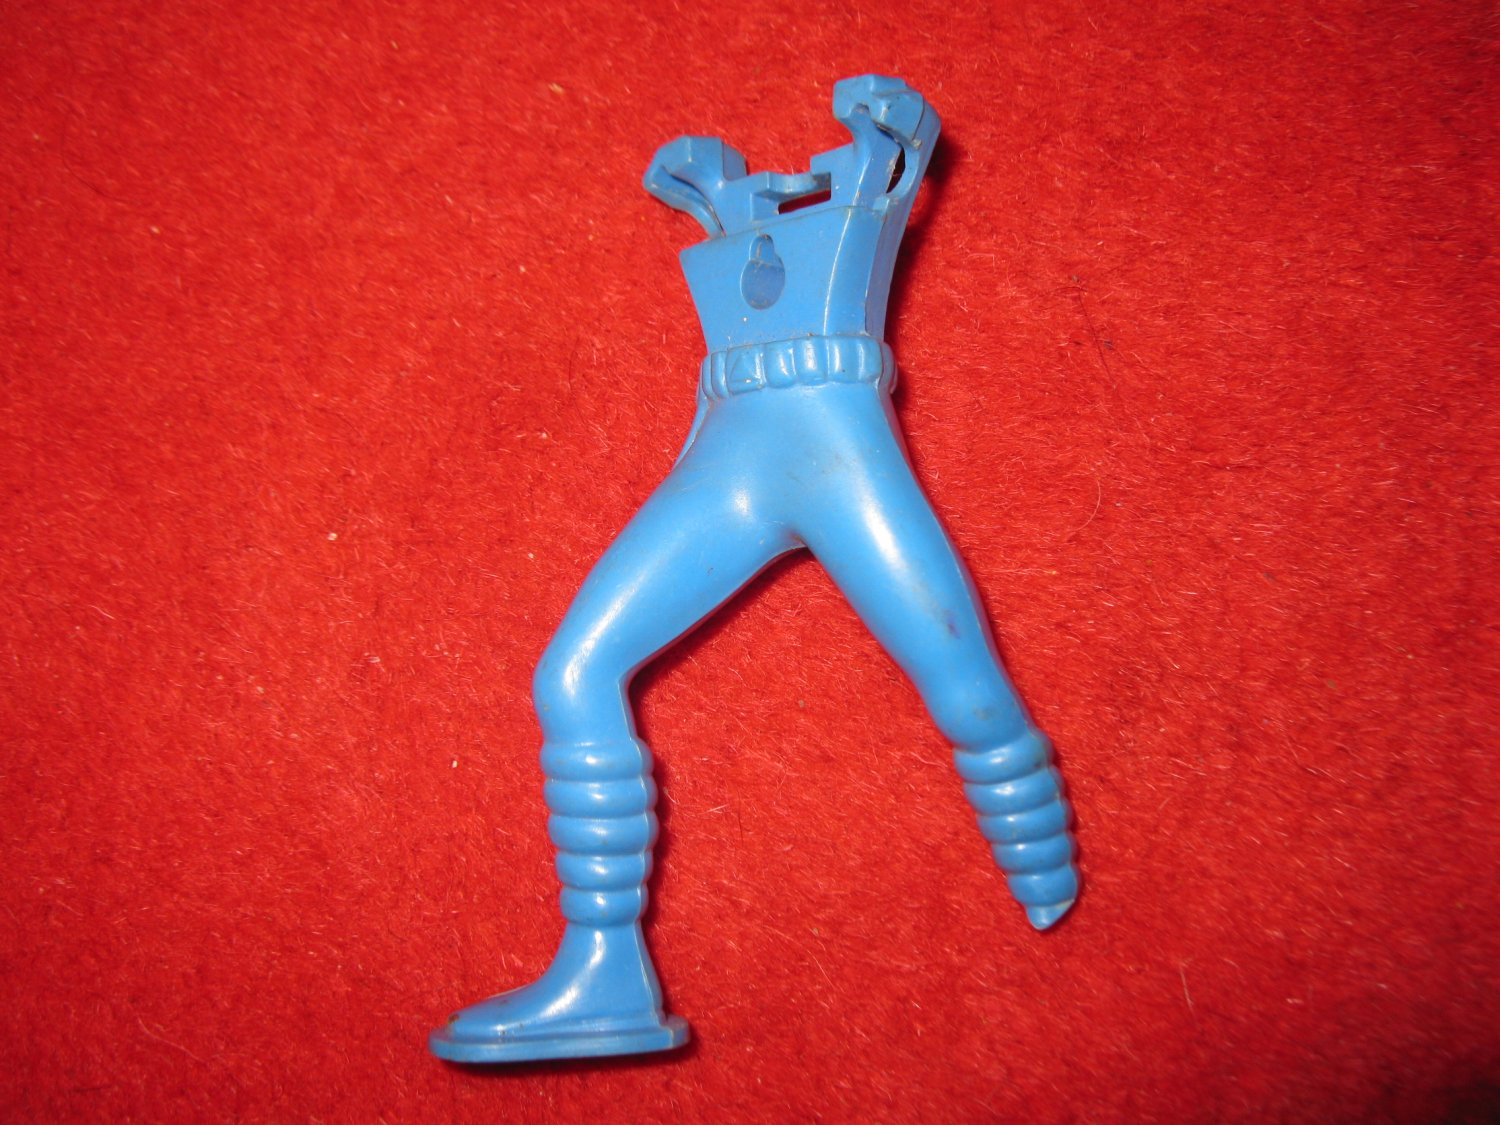 1960's Renwal Take-a-part Spaceman Puzzle Action Figure part: Blue Torso / Body (damaged foot)